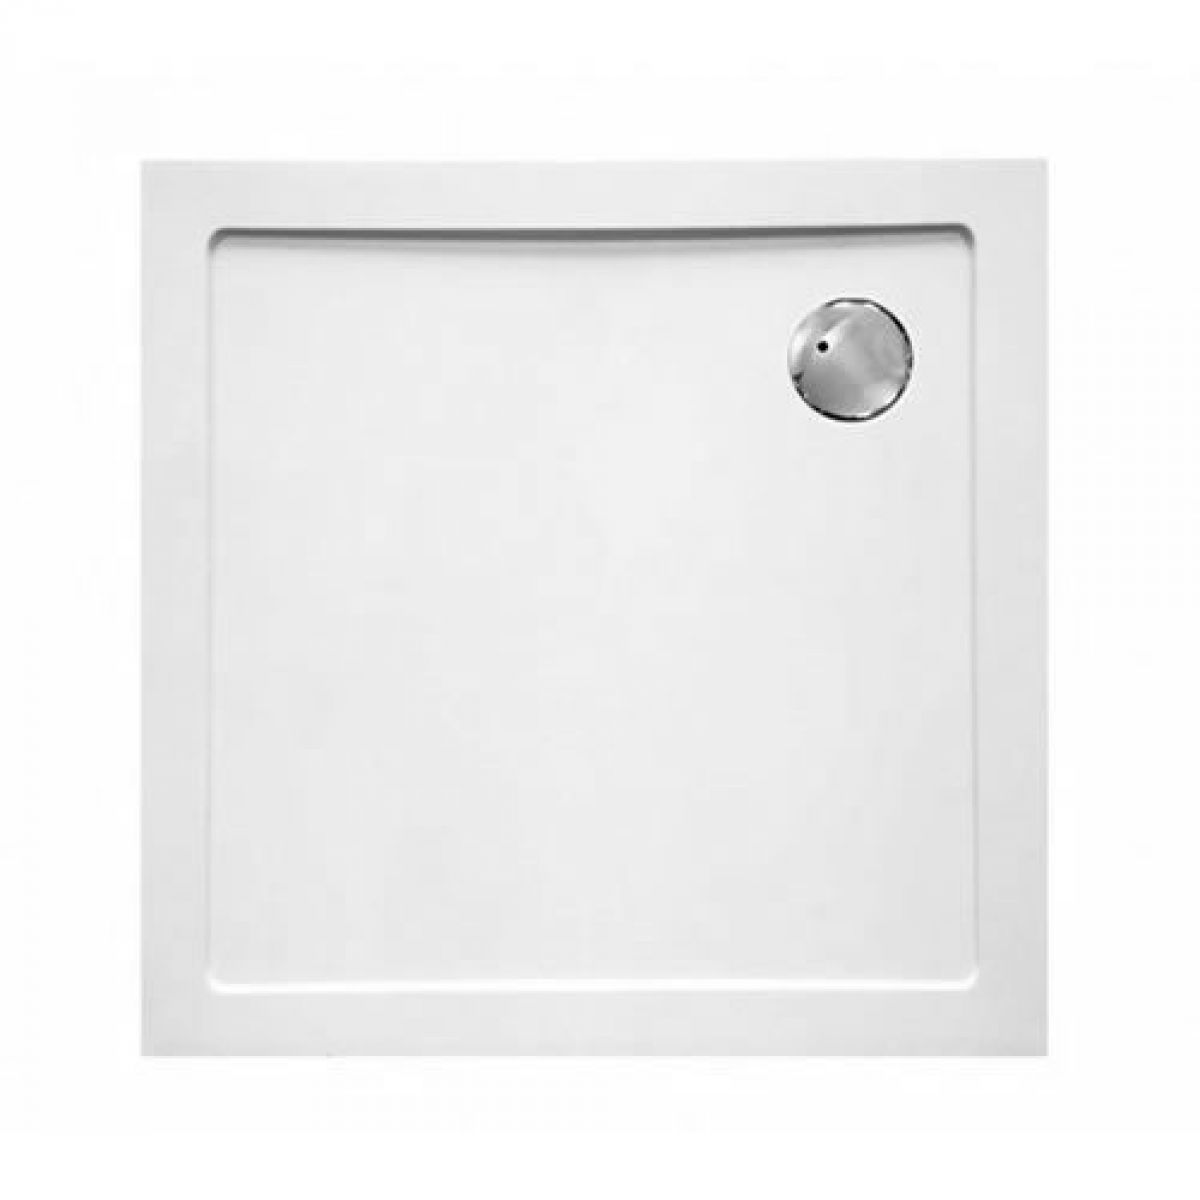 Cleargreen 35mm Low Profile Square Shower Tray Uk Bathrooms